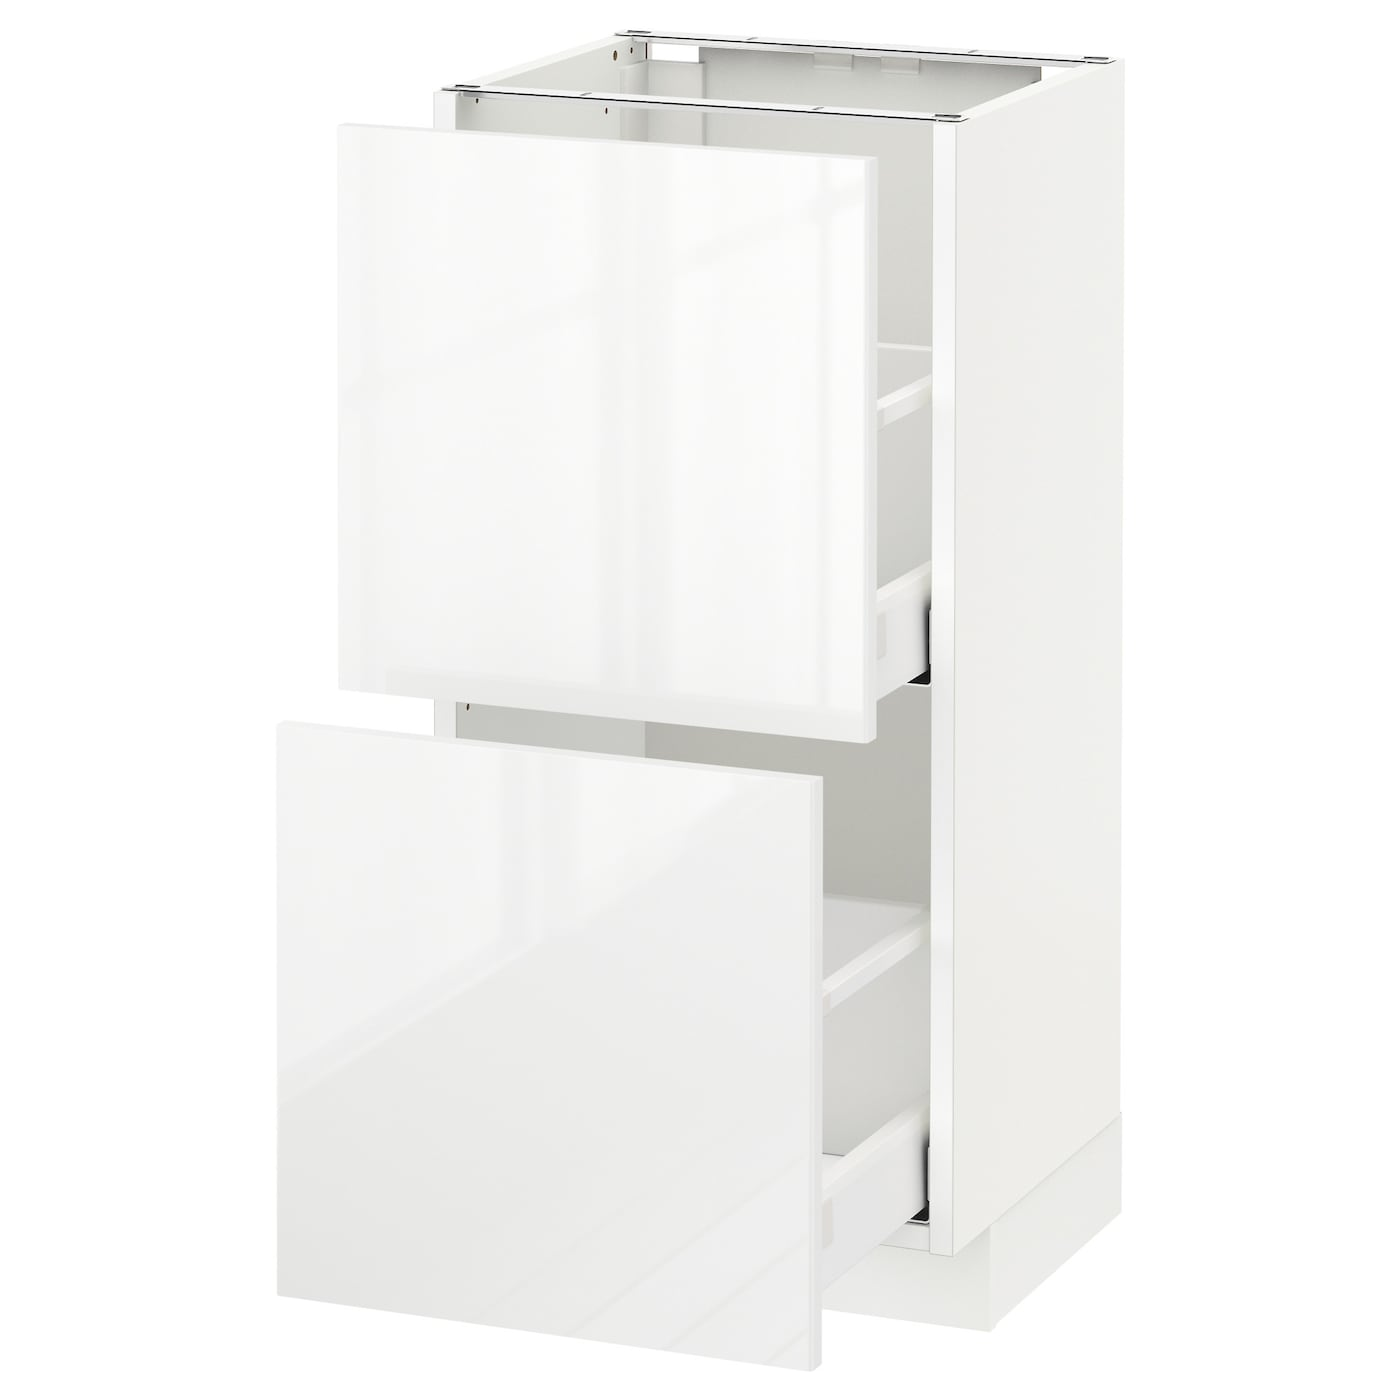 Ringhult Drawer Front High Gloss White 60 X 40 Cm: METOD/MAXIMERA Base Cabinet With 2 Drawers White/ringhult